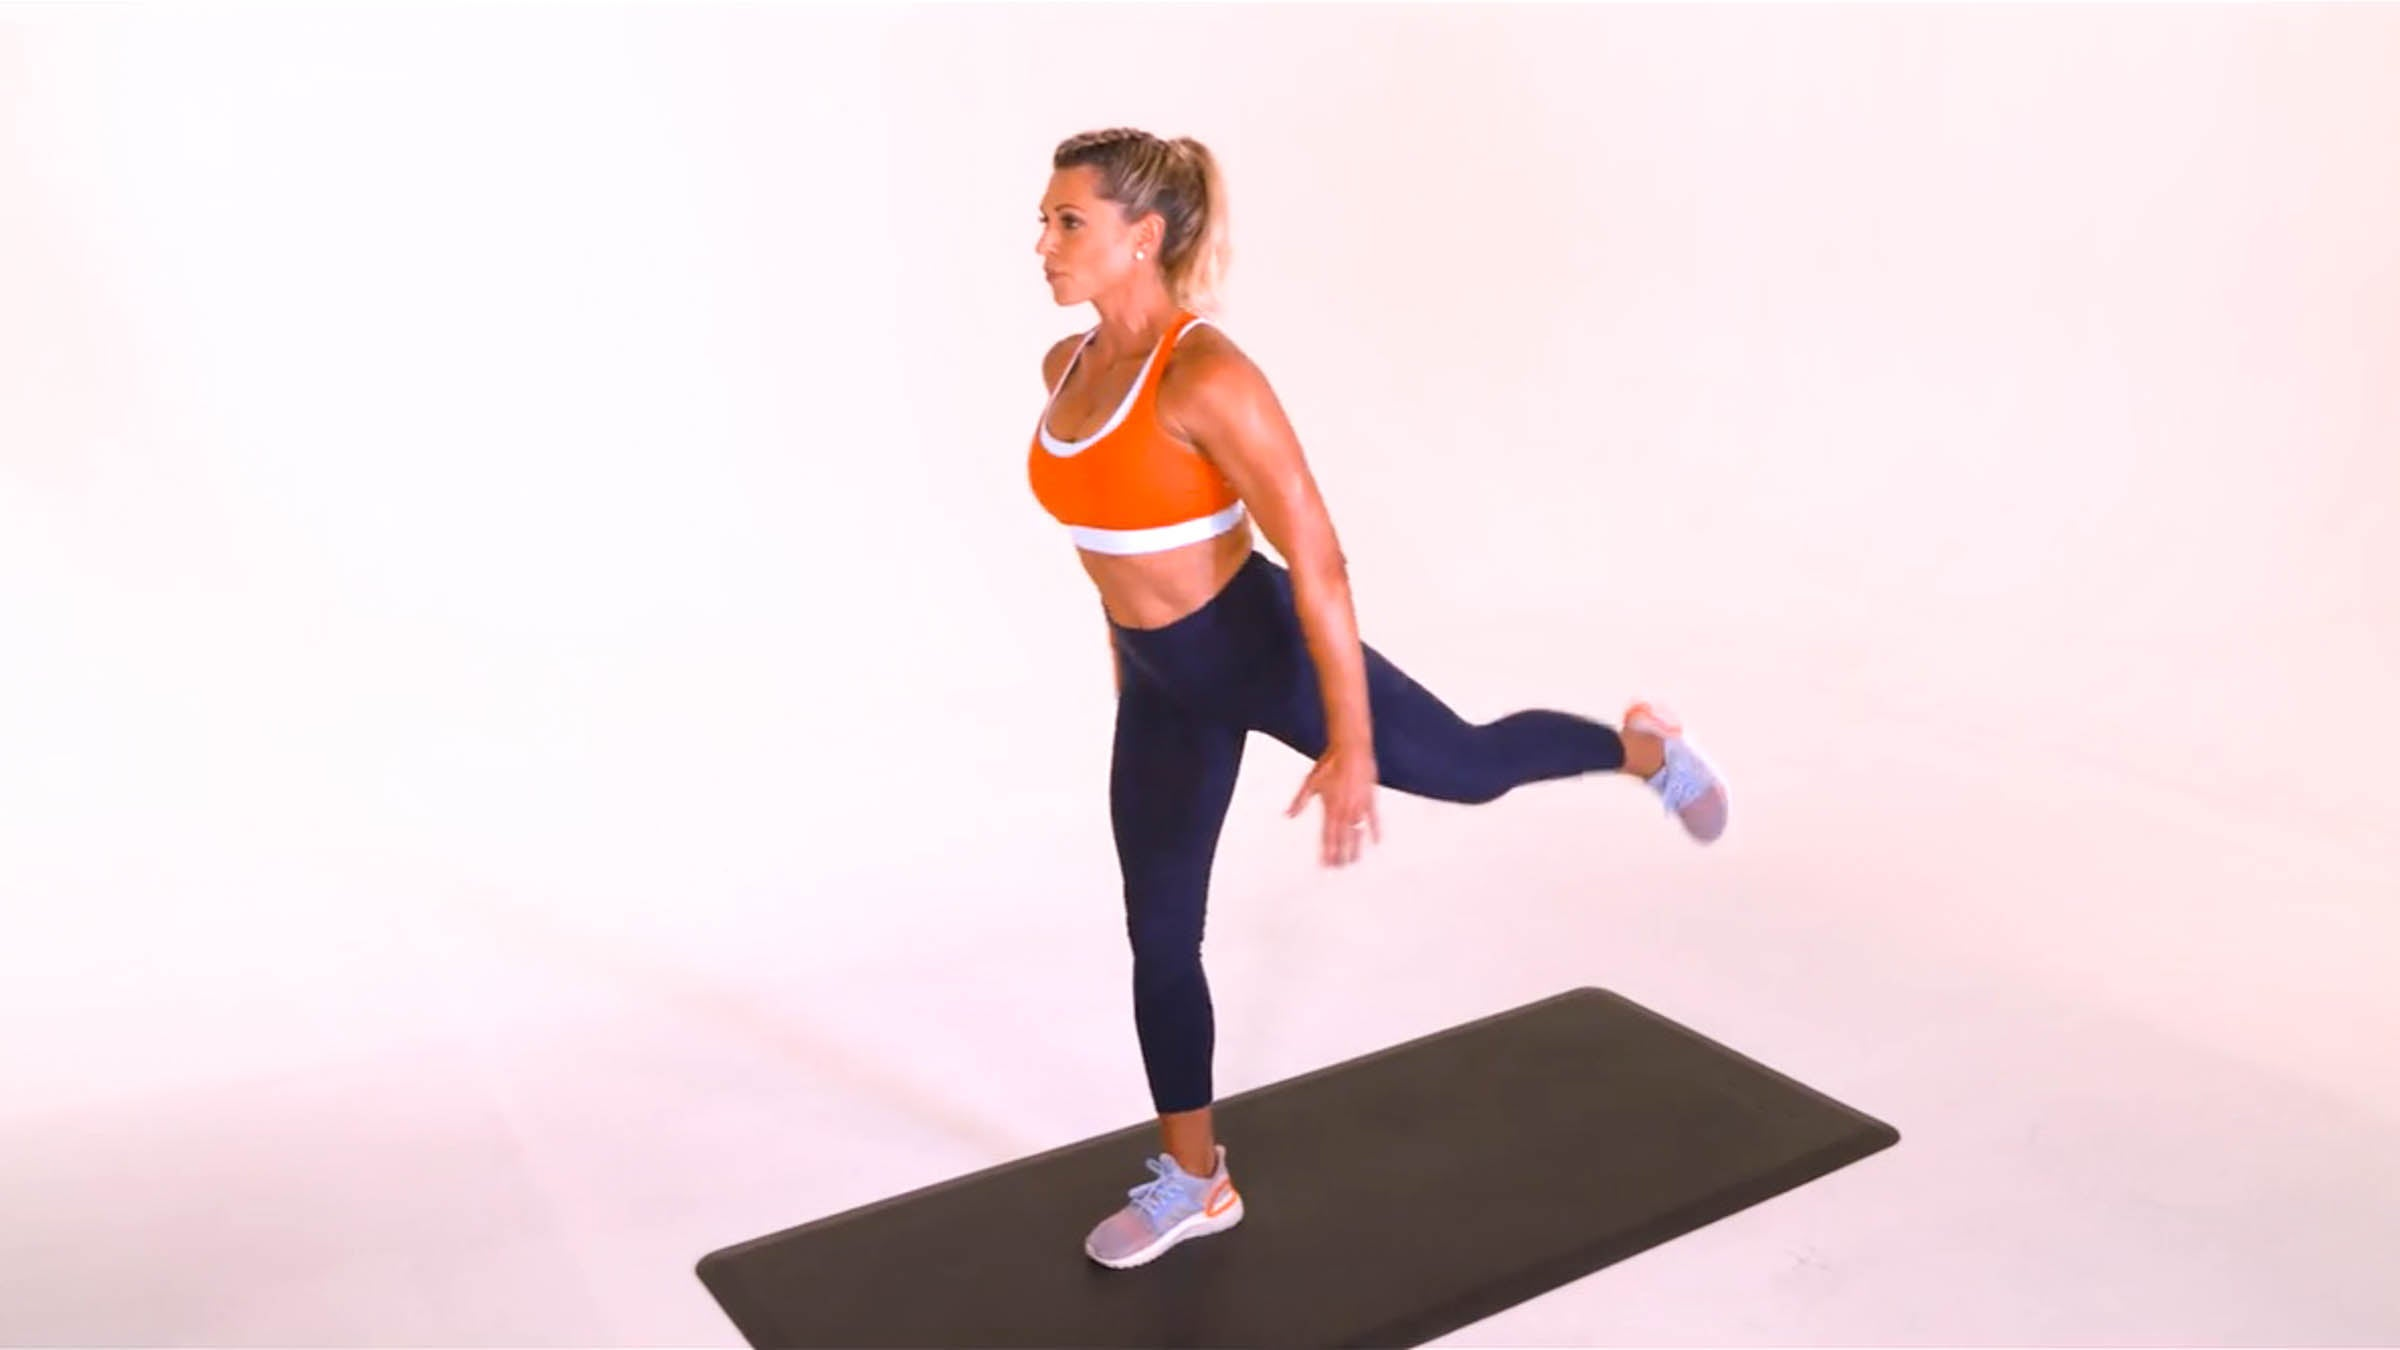 Stationary Lunge With Glute Lift